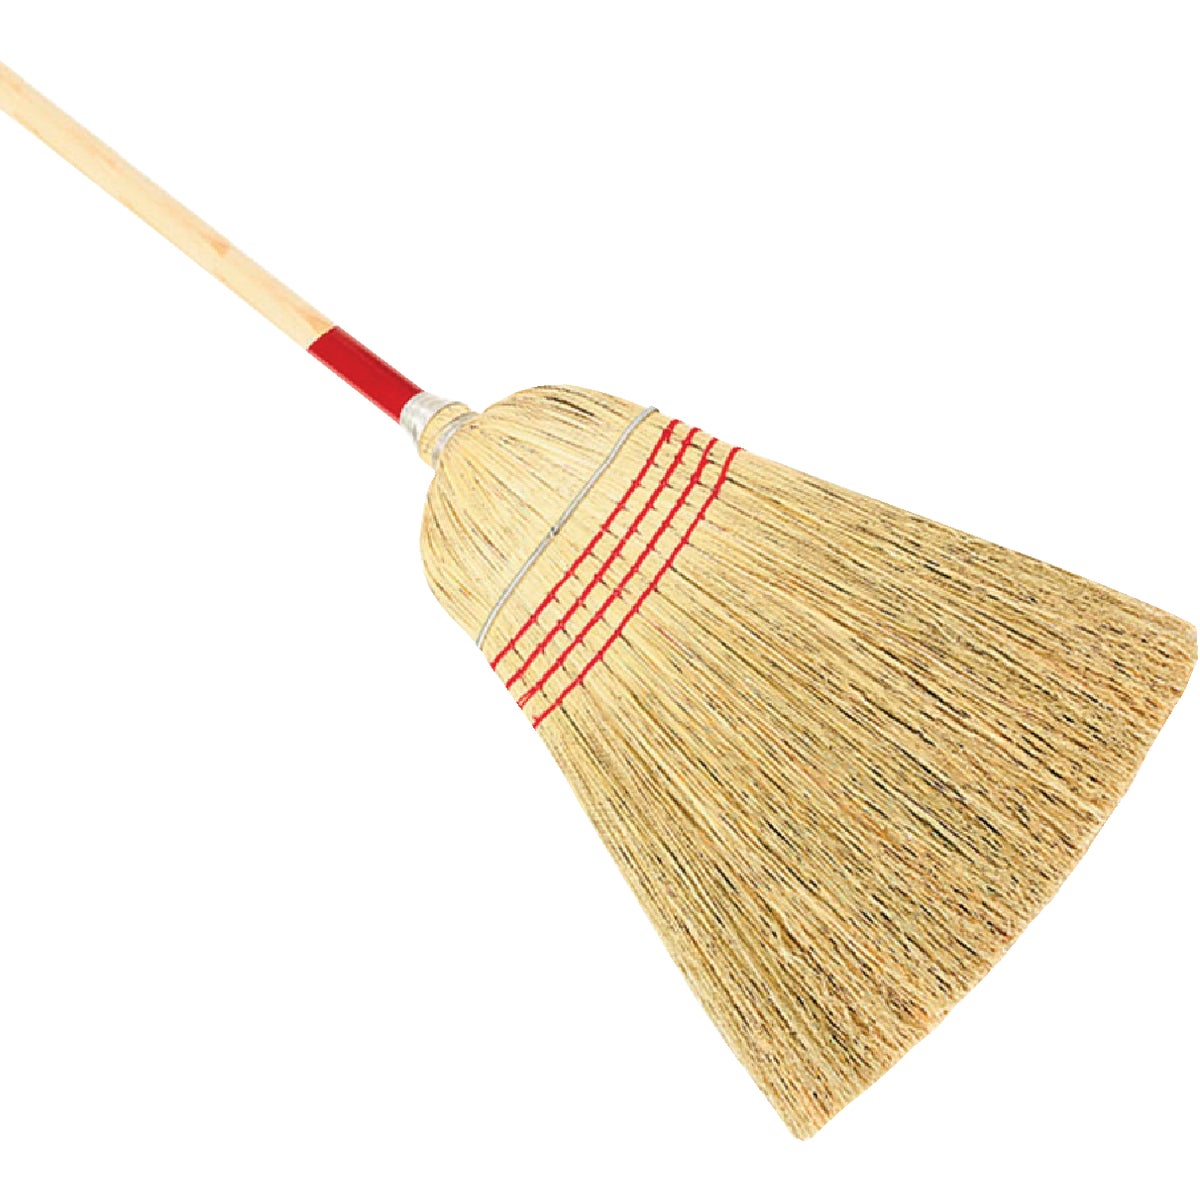 HEAVY DUTY CORN BROOM - H100 by Harper Brush Incom